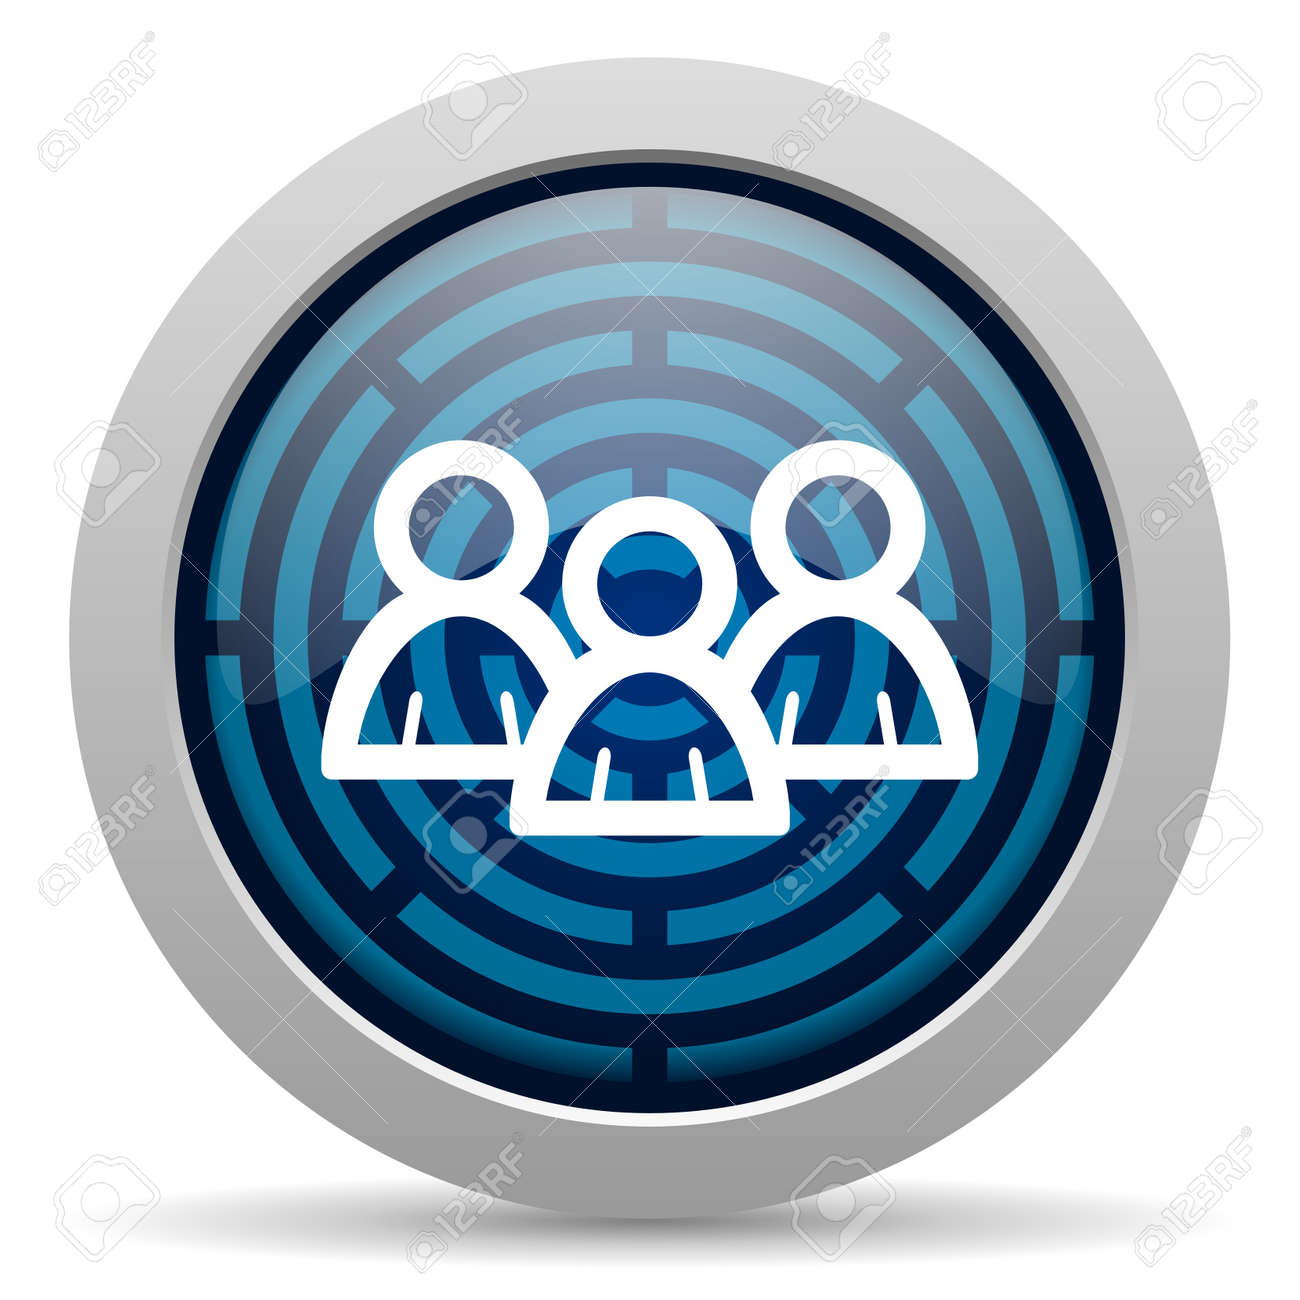 forum icon Stock Photo - 15418046